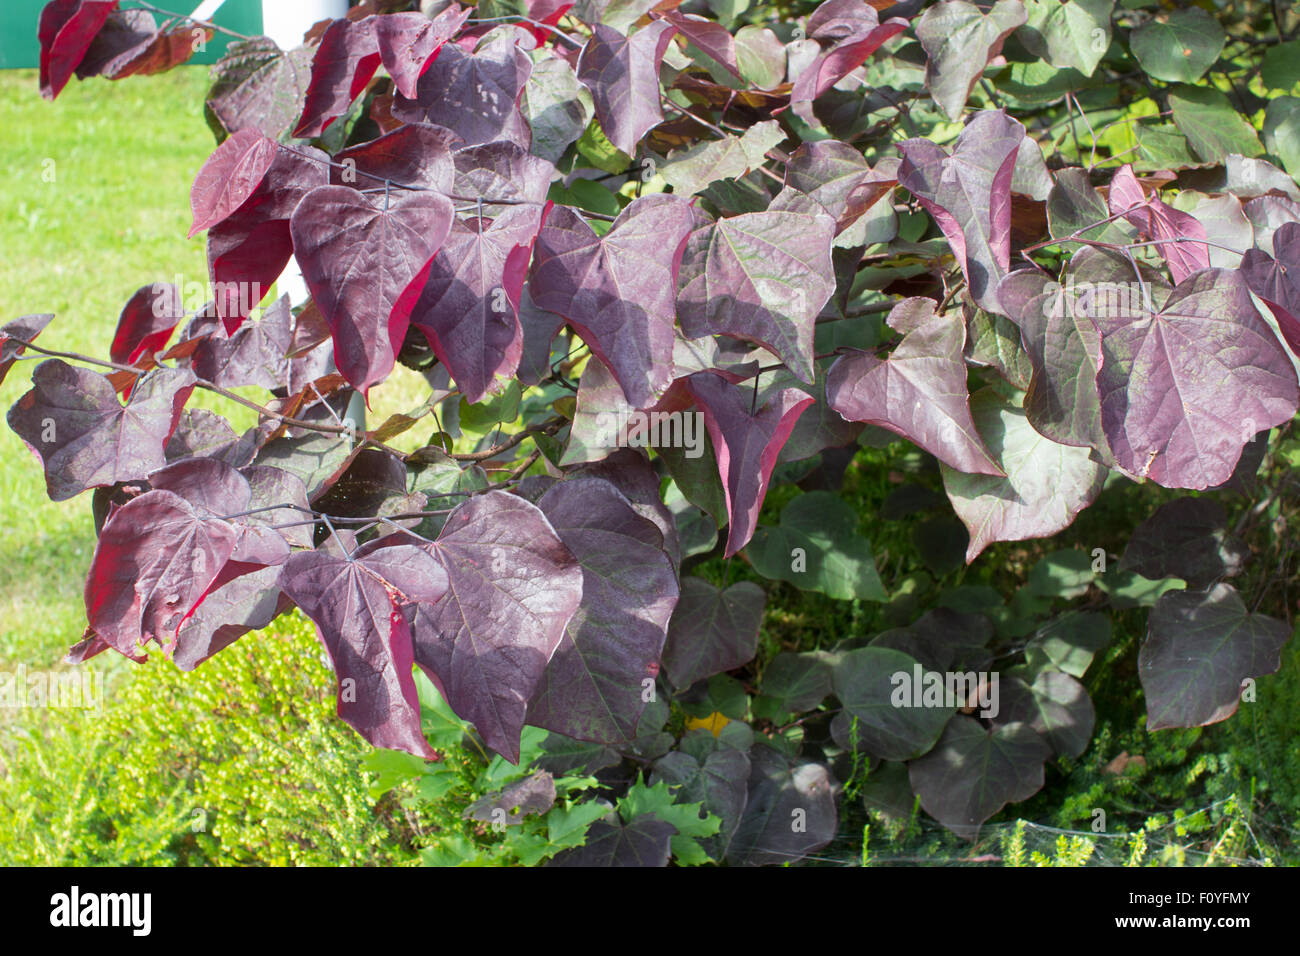 Purple tinged young foliage of the Eastern redbud variety, Cercis canadensis 'Forest Pansy' - Stock Image